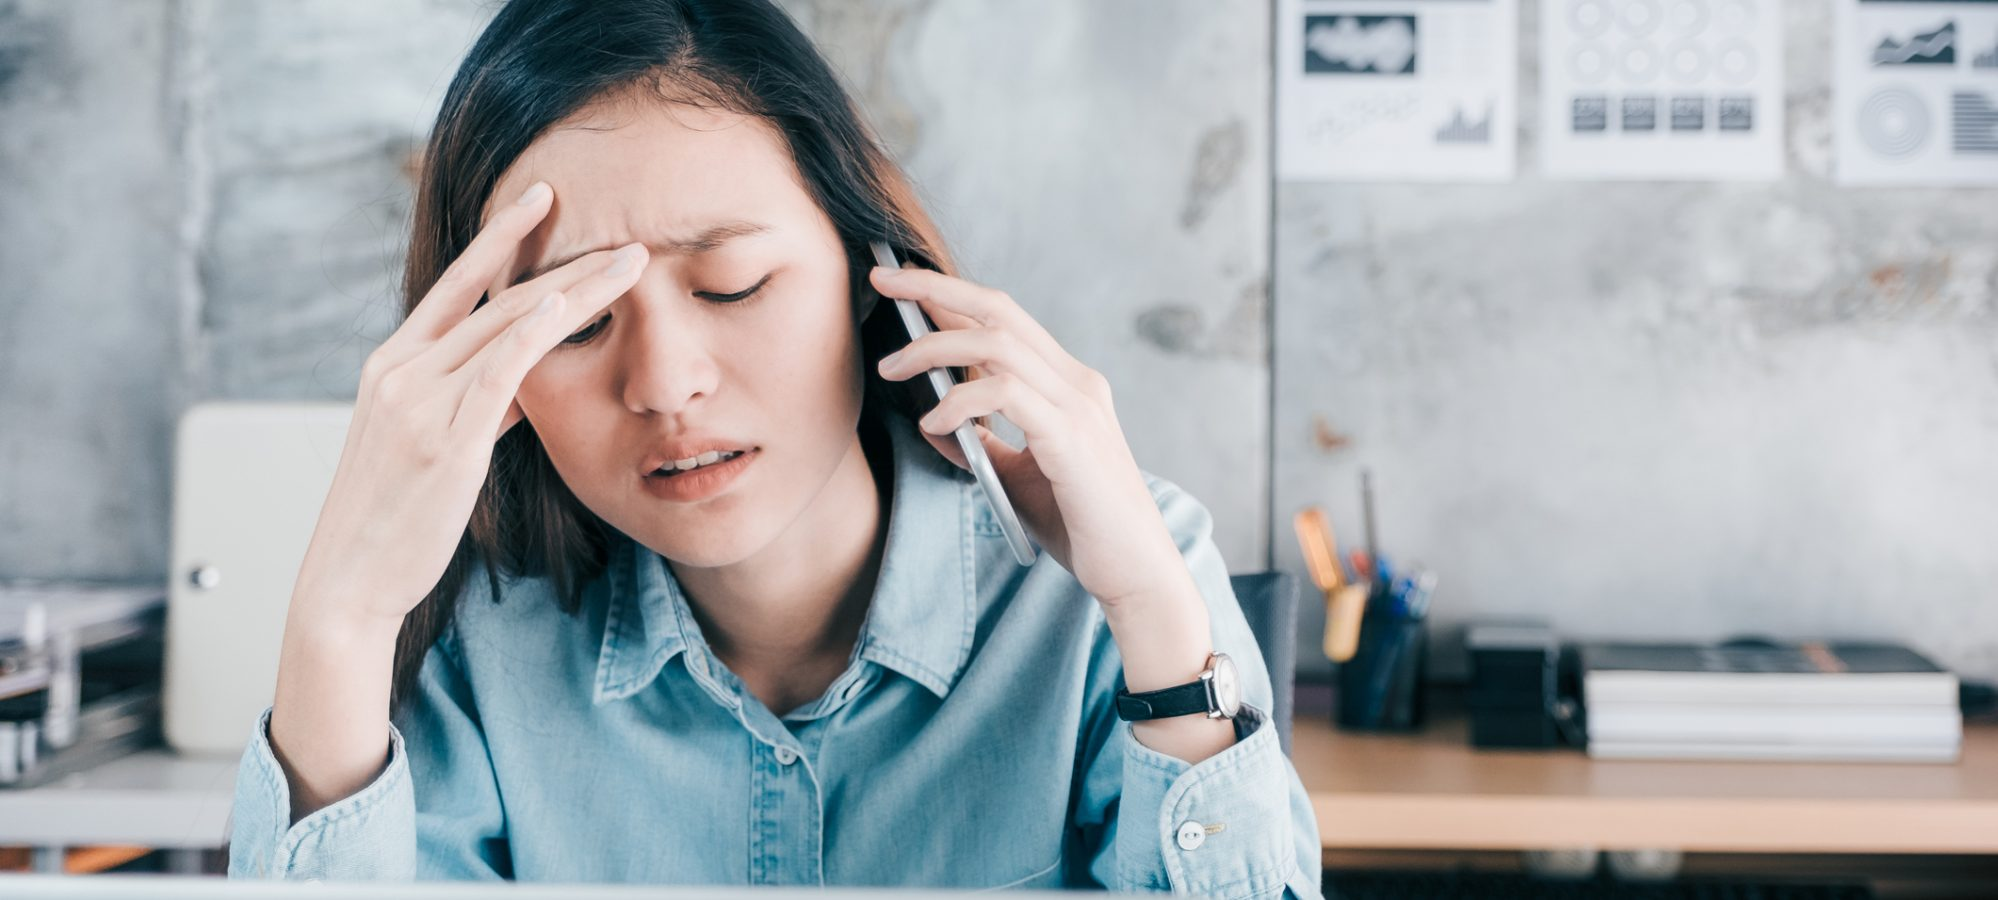 Image of young business woman who's on phone with current payroll provider and stressed